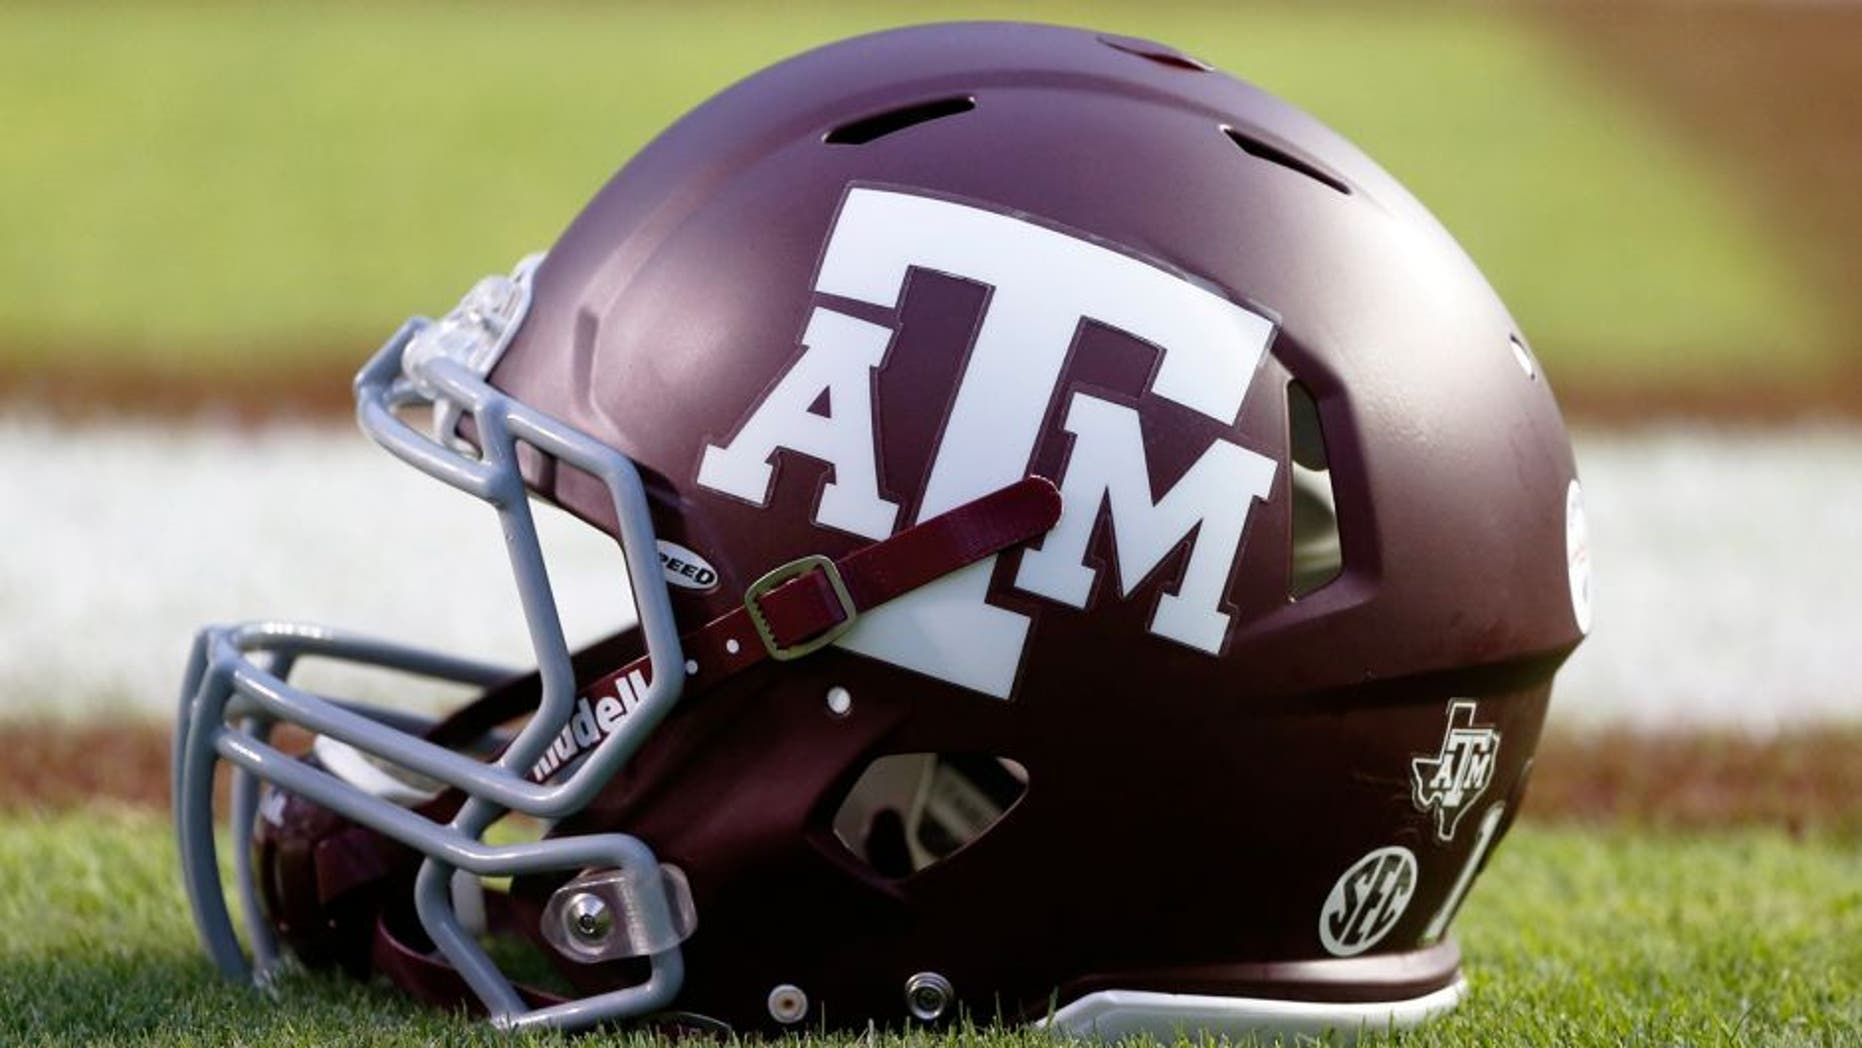 Sep 13, 2014; College Station, TX, USA; A Texas A&M Aggies helmet rest on the field prior to the game against the Rice Owls at Kyle Field. Mandatory Credit: Soobum Im-USA TODAY Sports